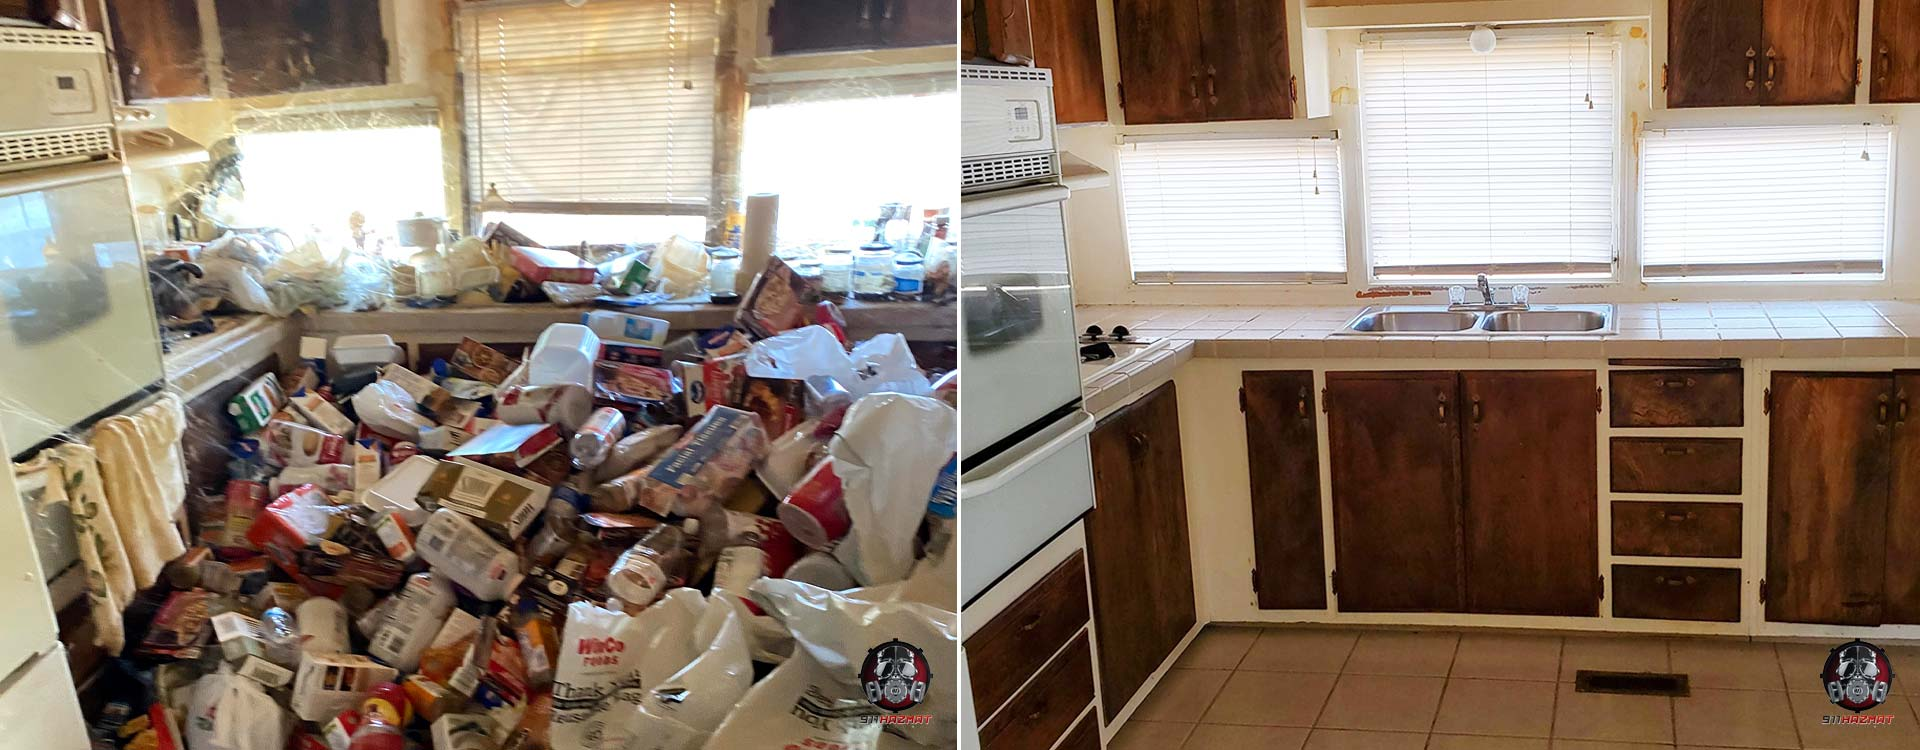 Hoarder Cleanup in San Francisco, Oakland & Palo Alto, CA and Surrounding Cities